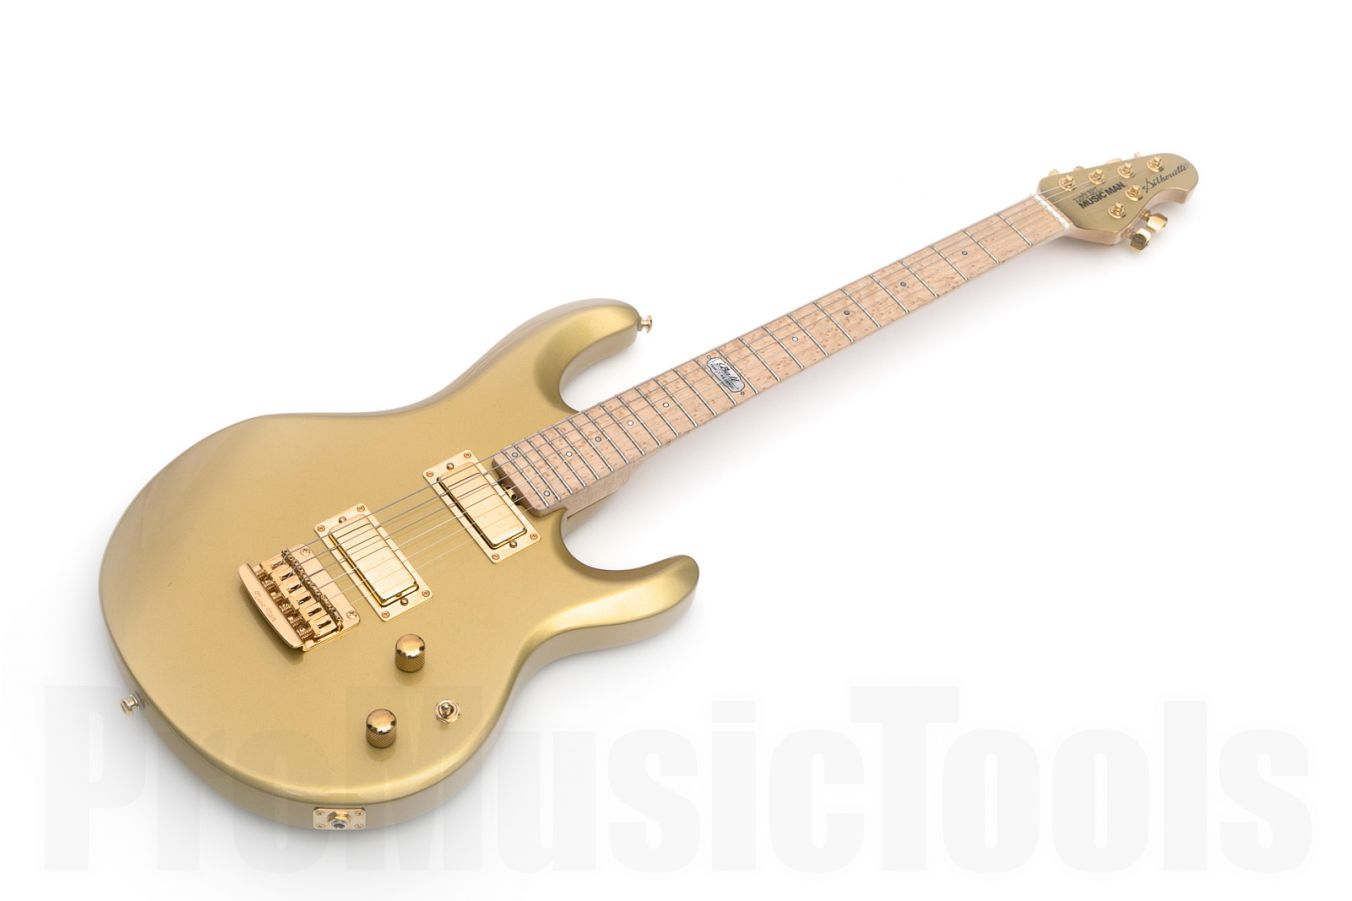 Music Man USA Silhouette BFR GR - Gold Roller